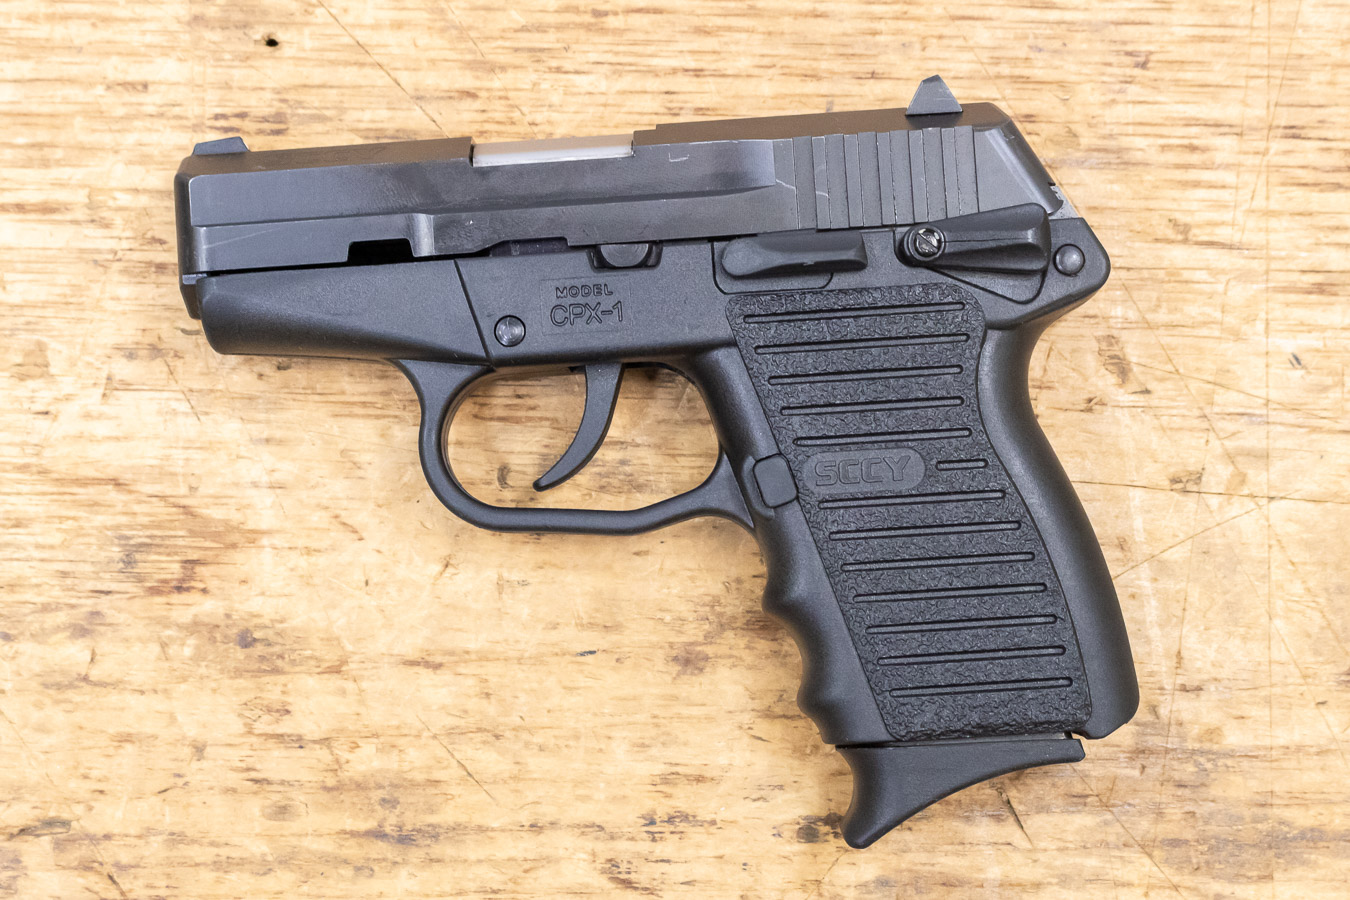 CPX-1 9MM 10-ROUND USED TRADE-IN PISTOL